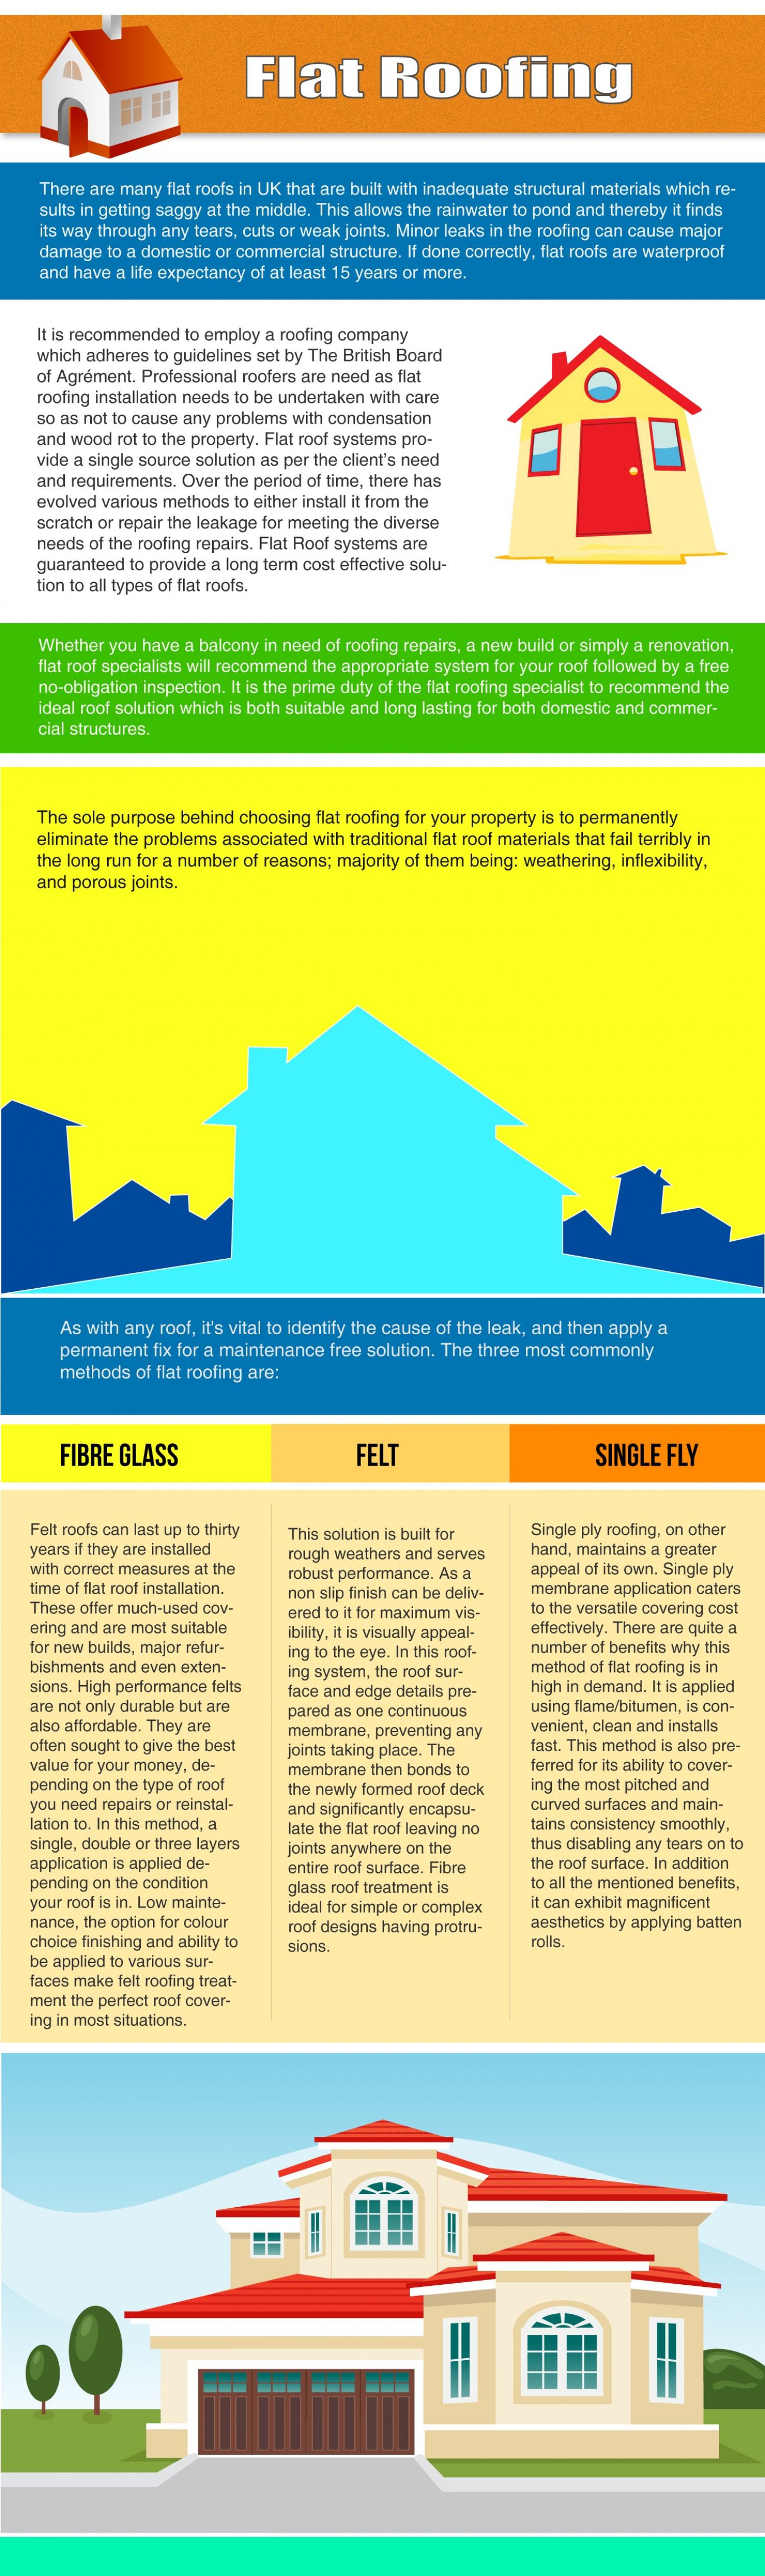 Flat Roofing Infographic